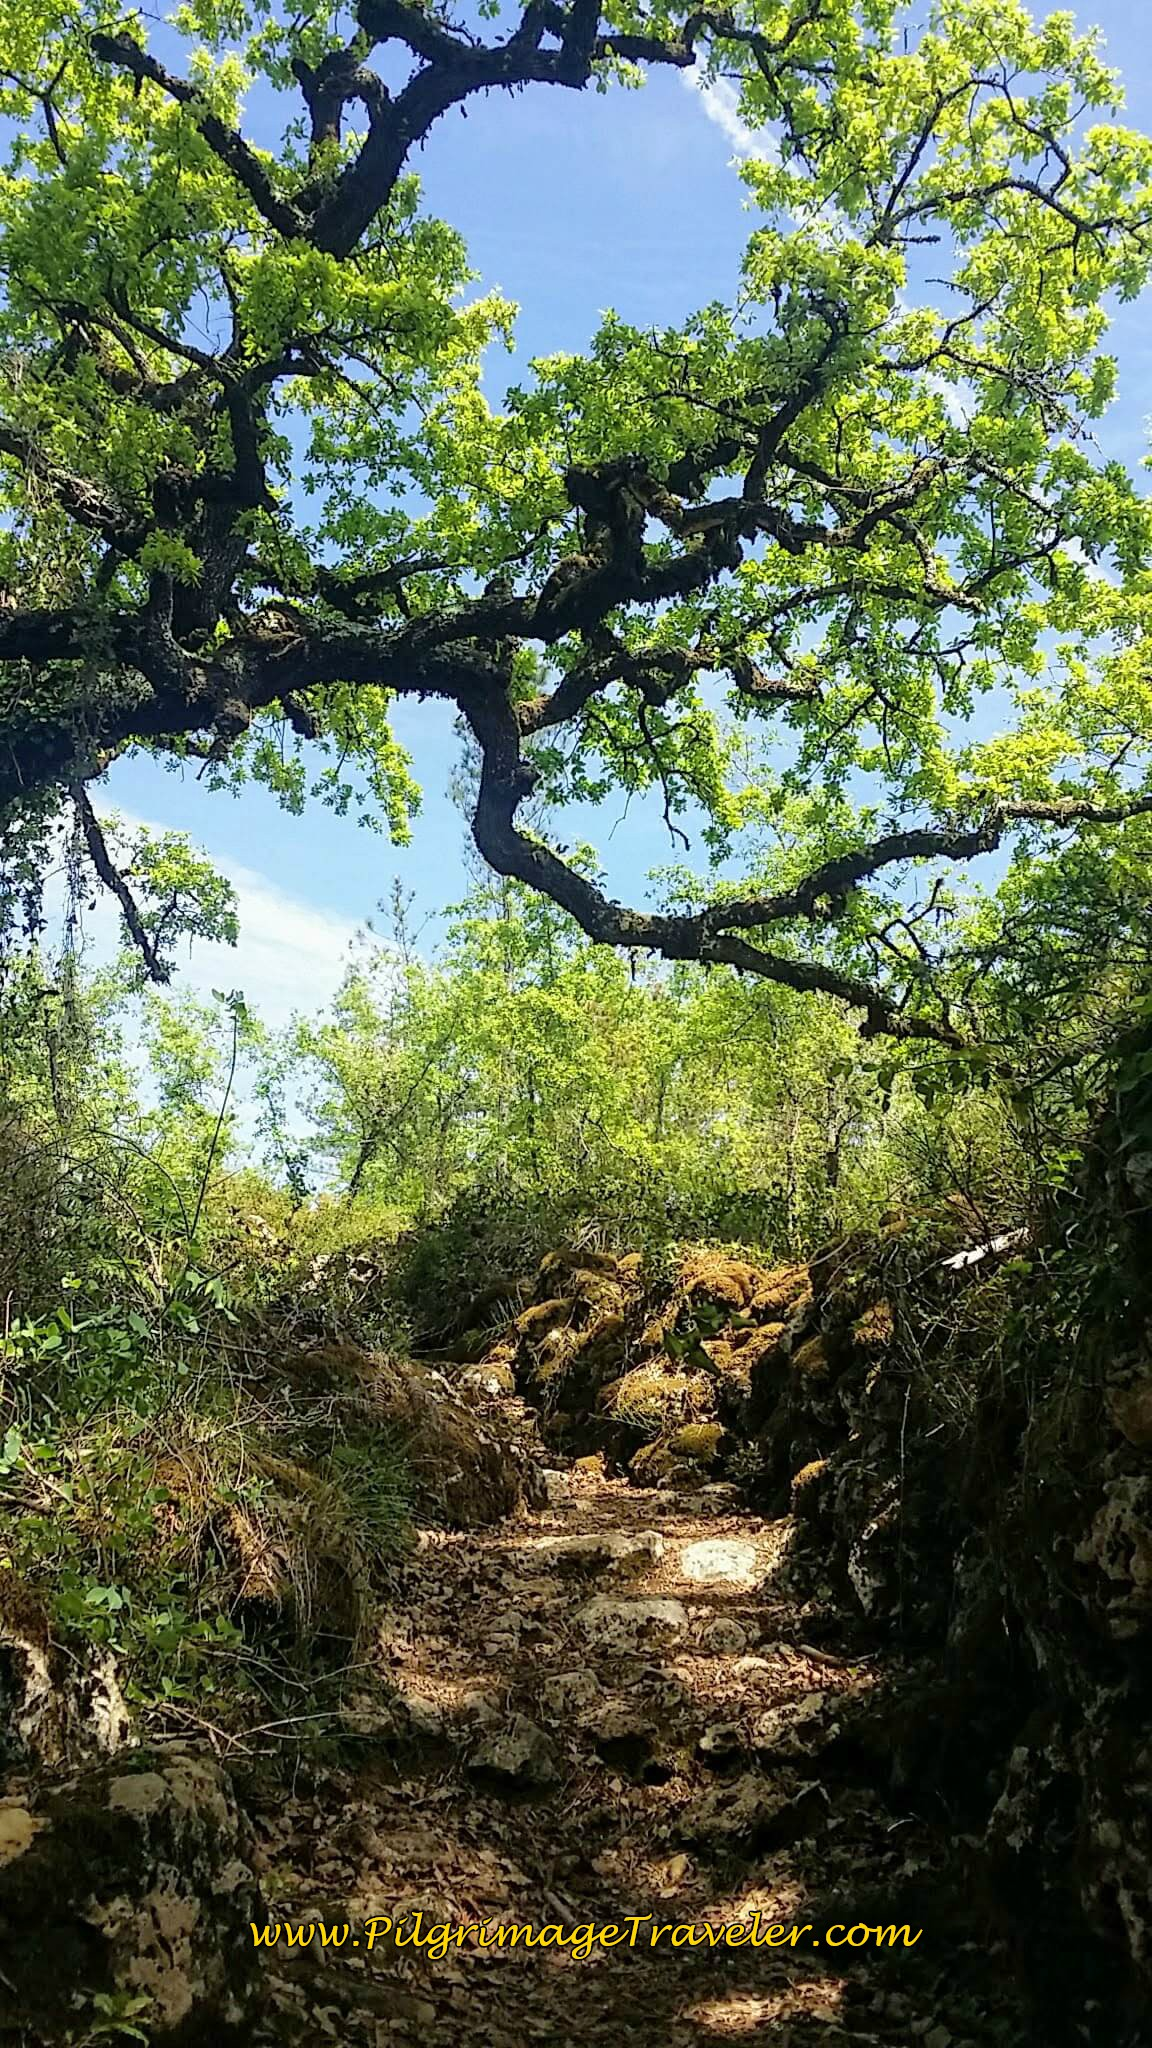 Large, Knarled and Enchanted Trees on Path on day seven of the Camino Portugués